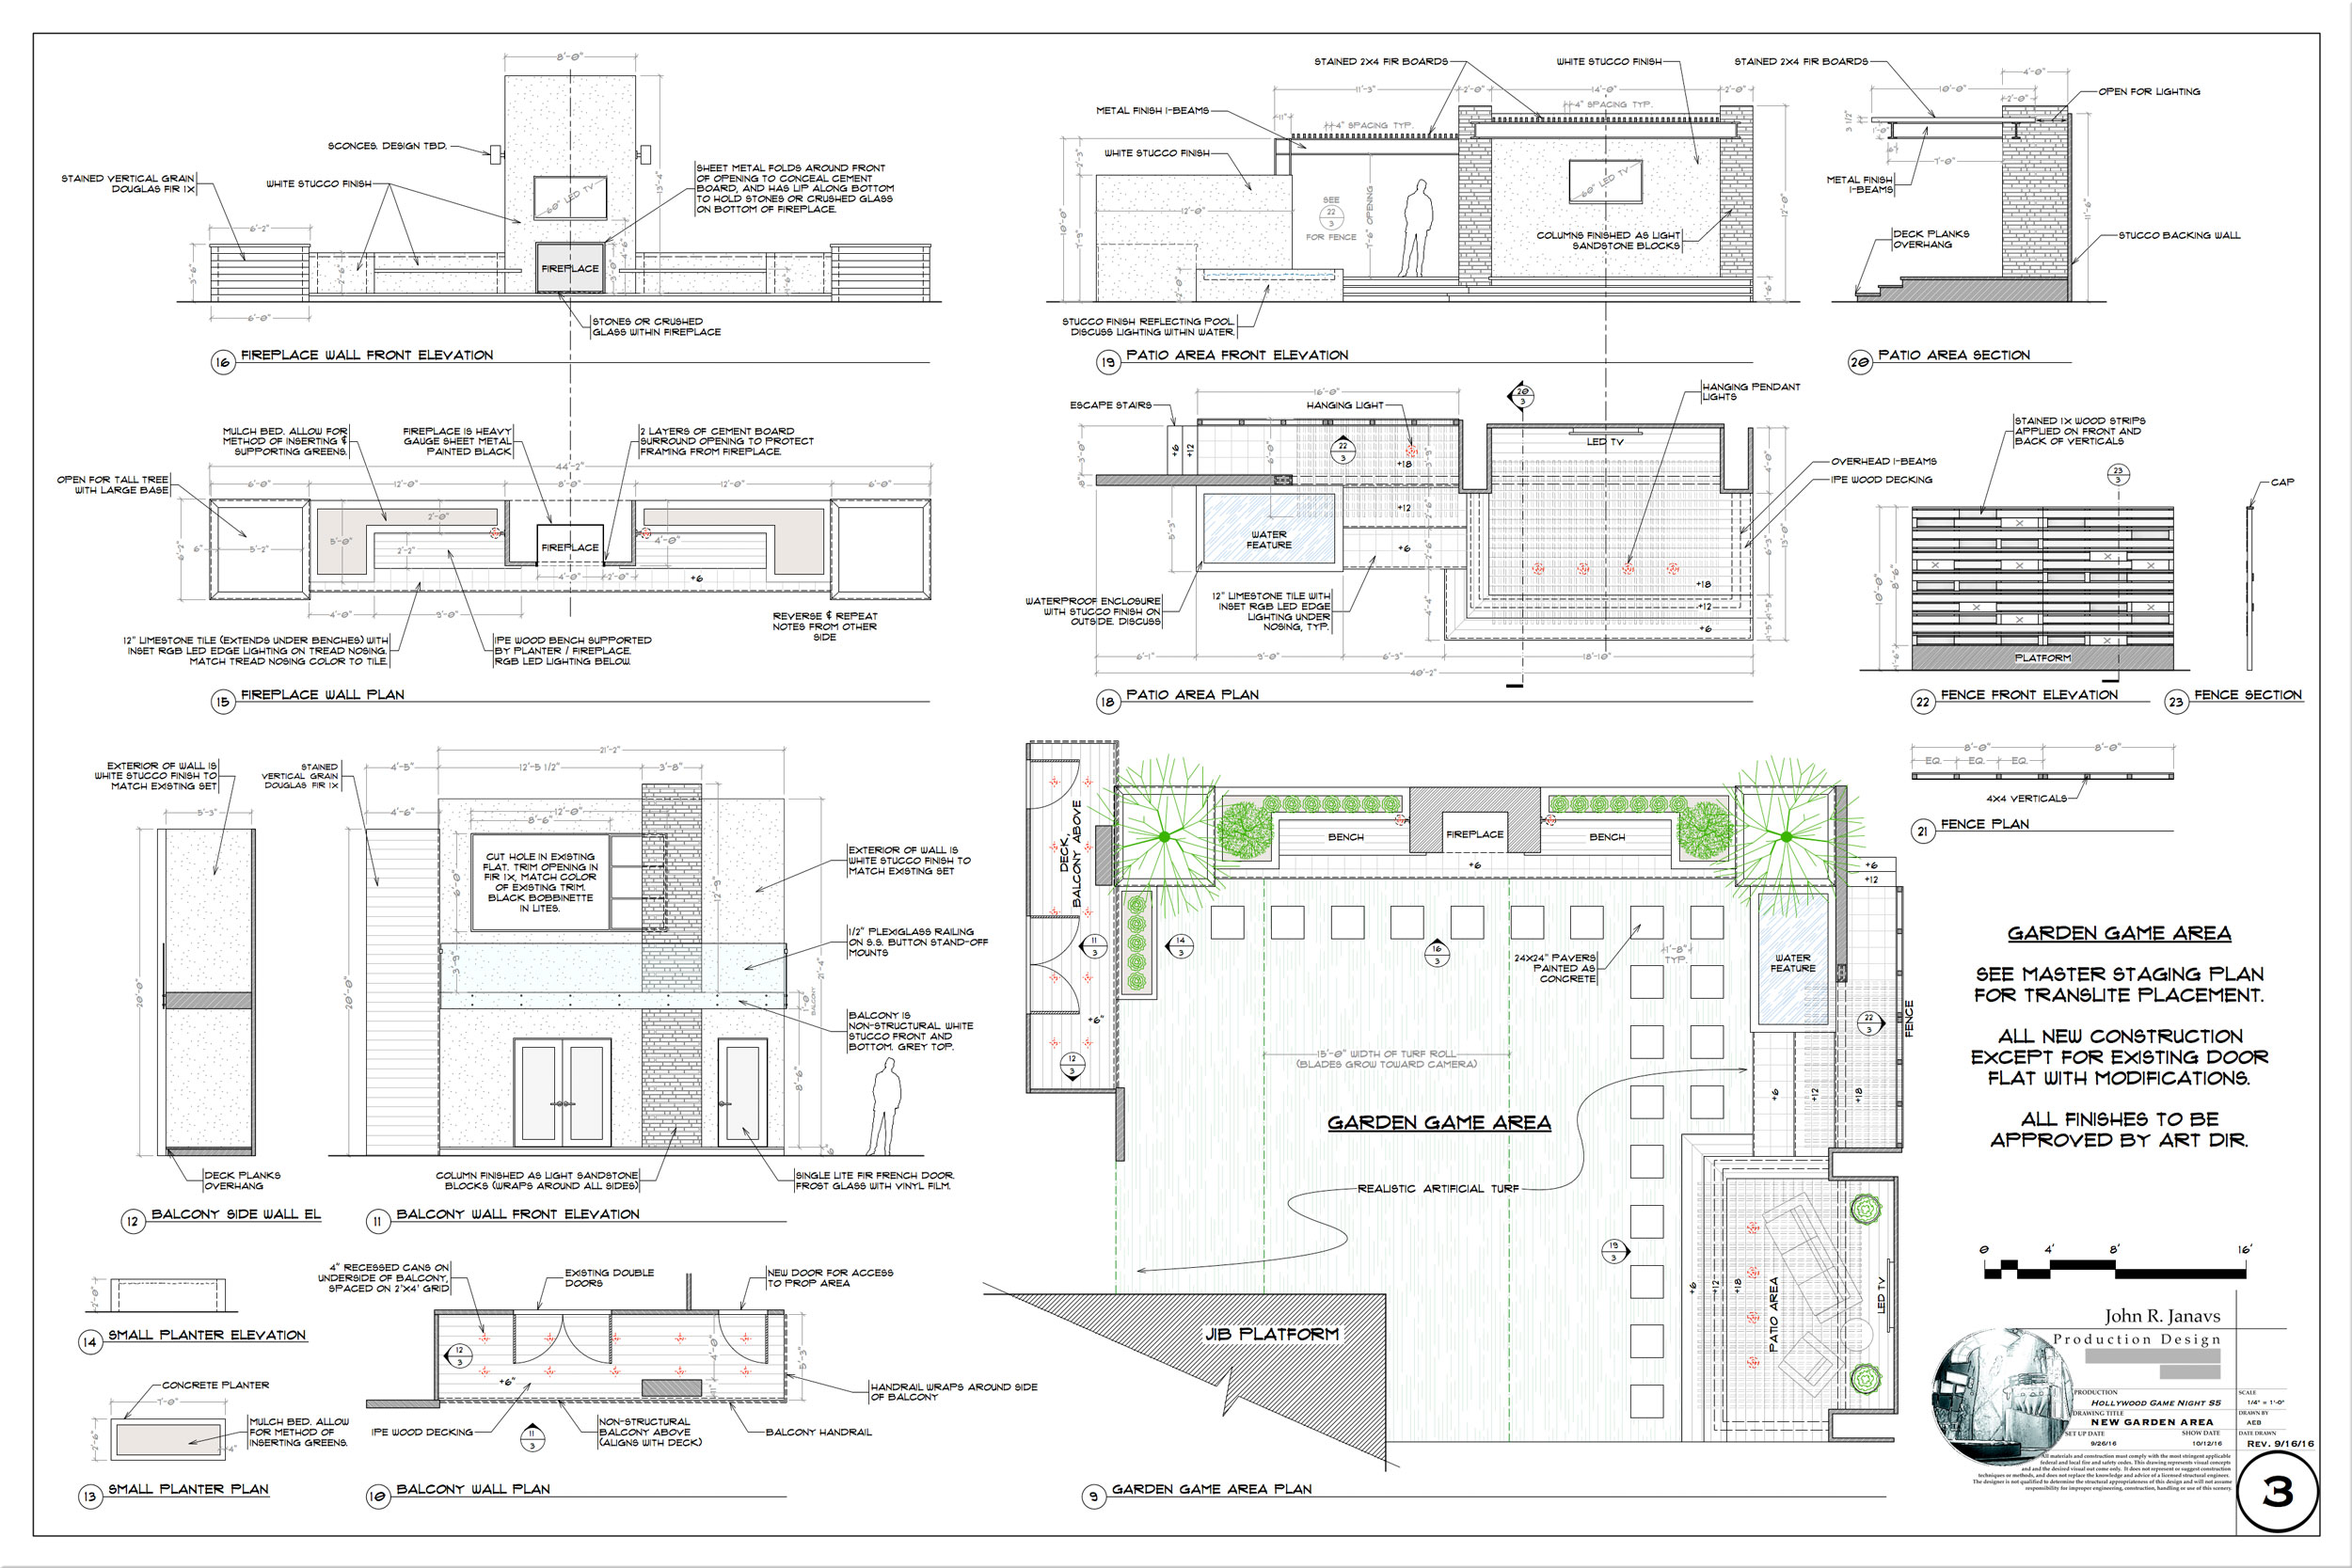 andy-broomell-set-design-drafting-hgn.jpg